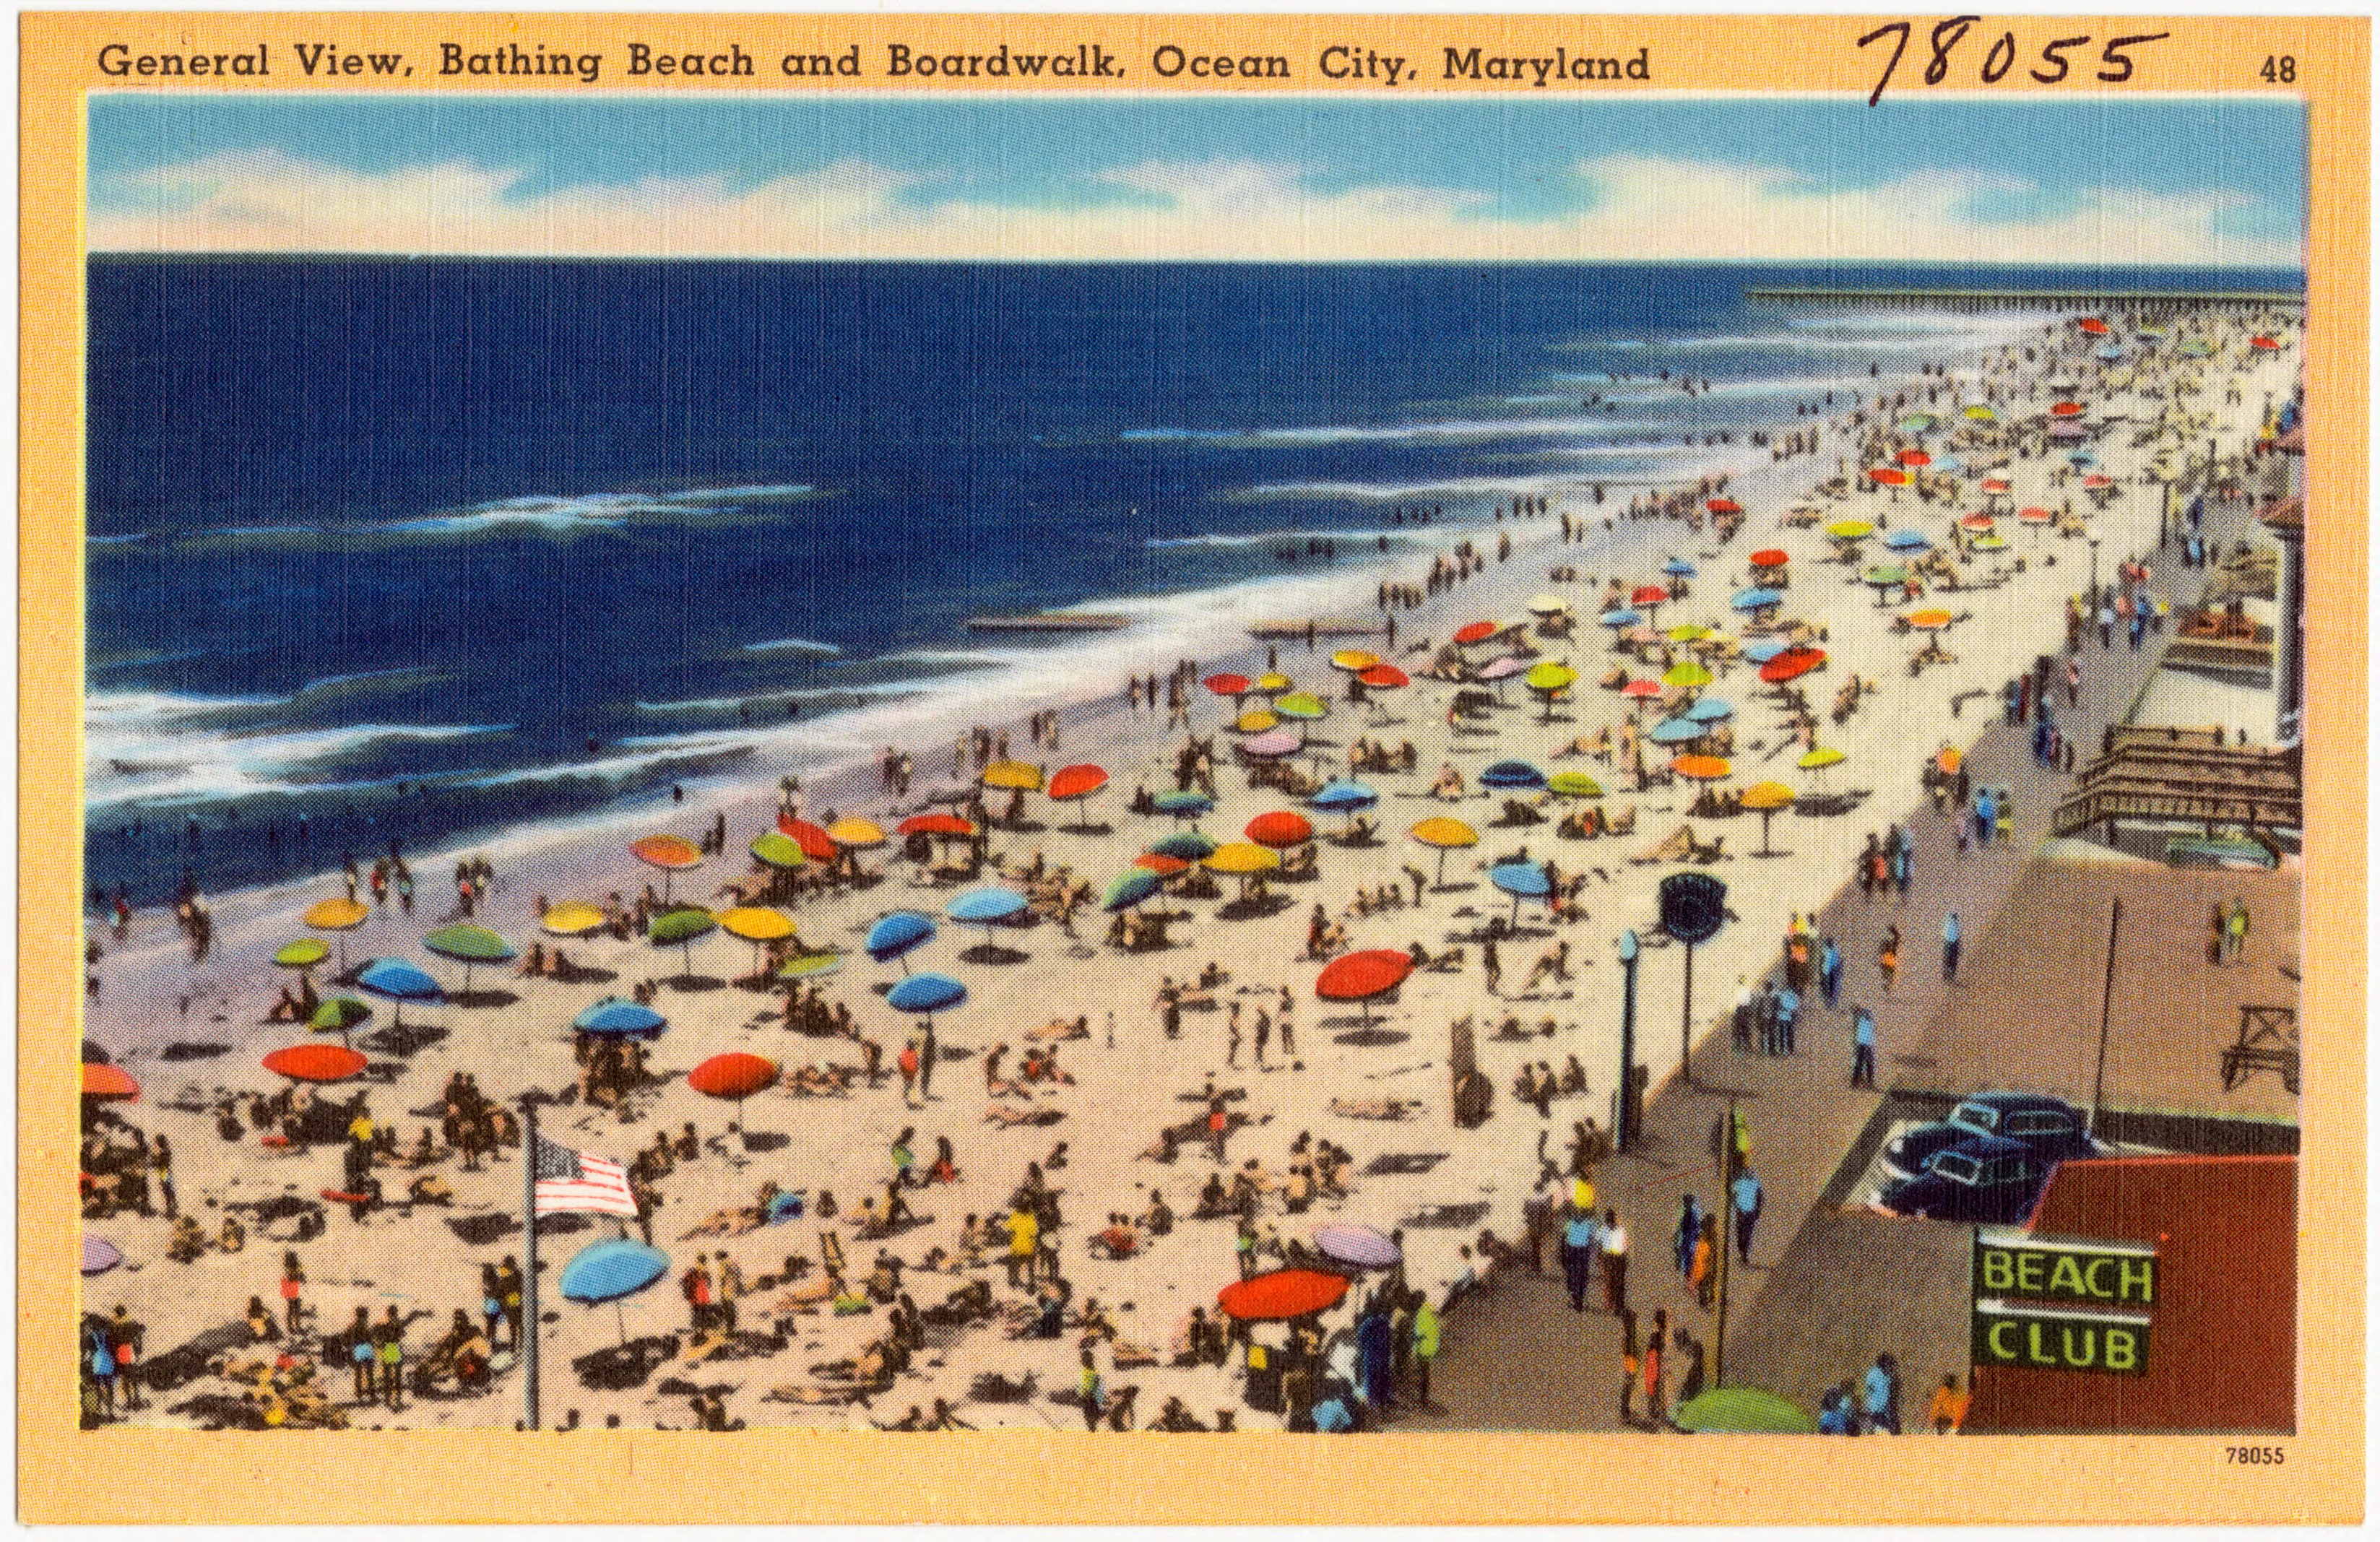 File General View Bathing Beach And Boardwalk Ocean City Maryland 78055